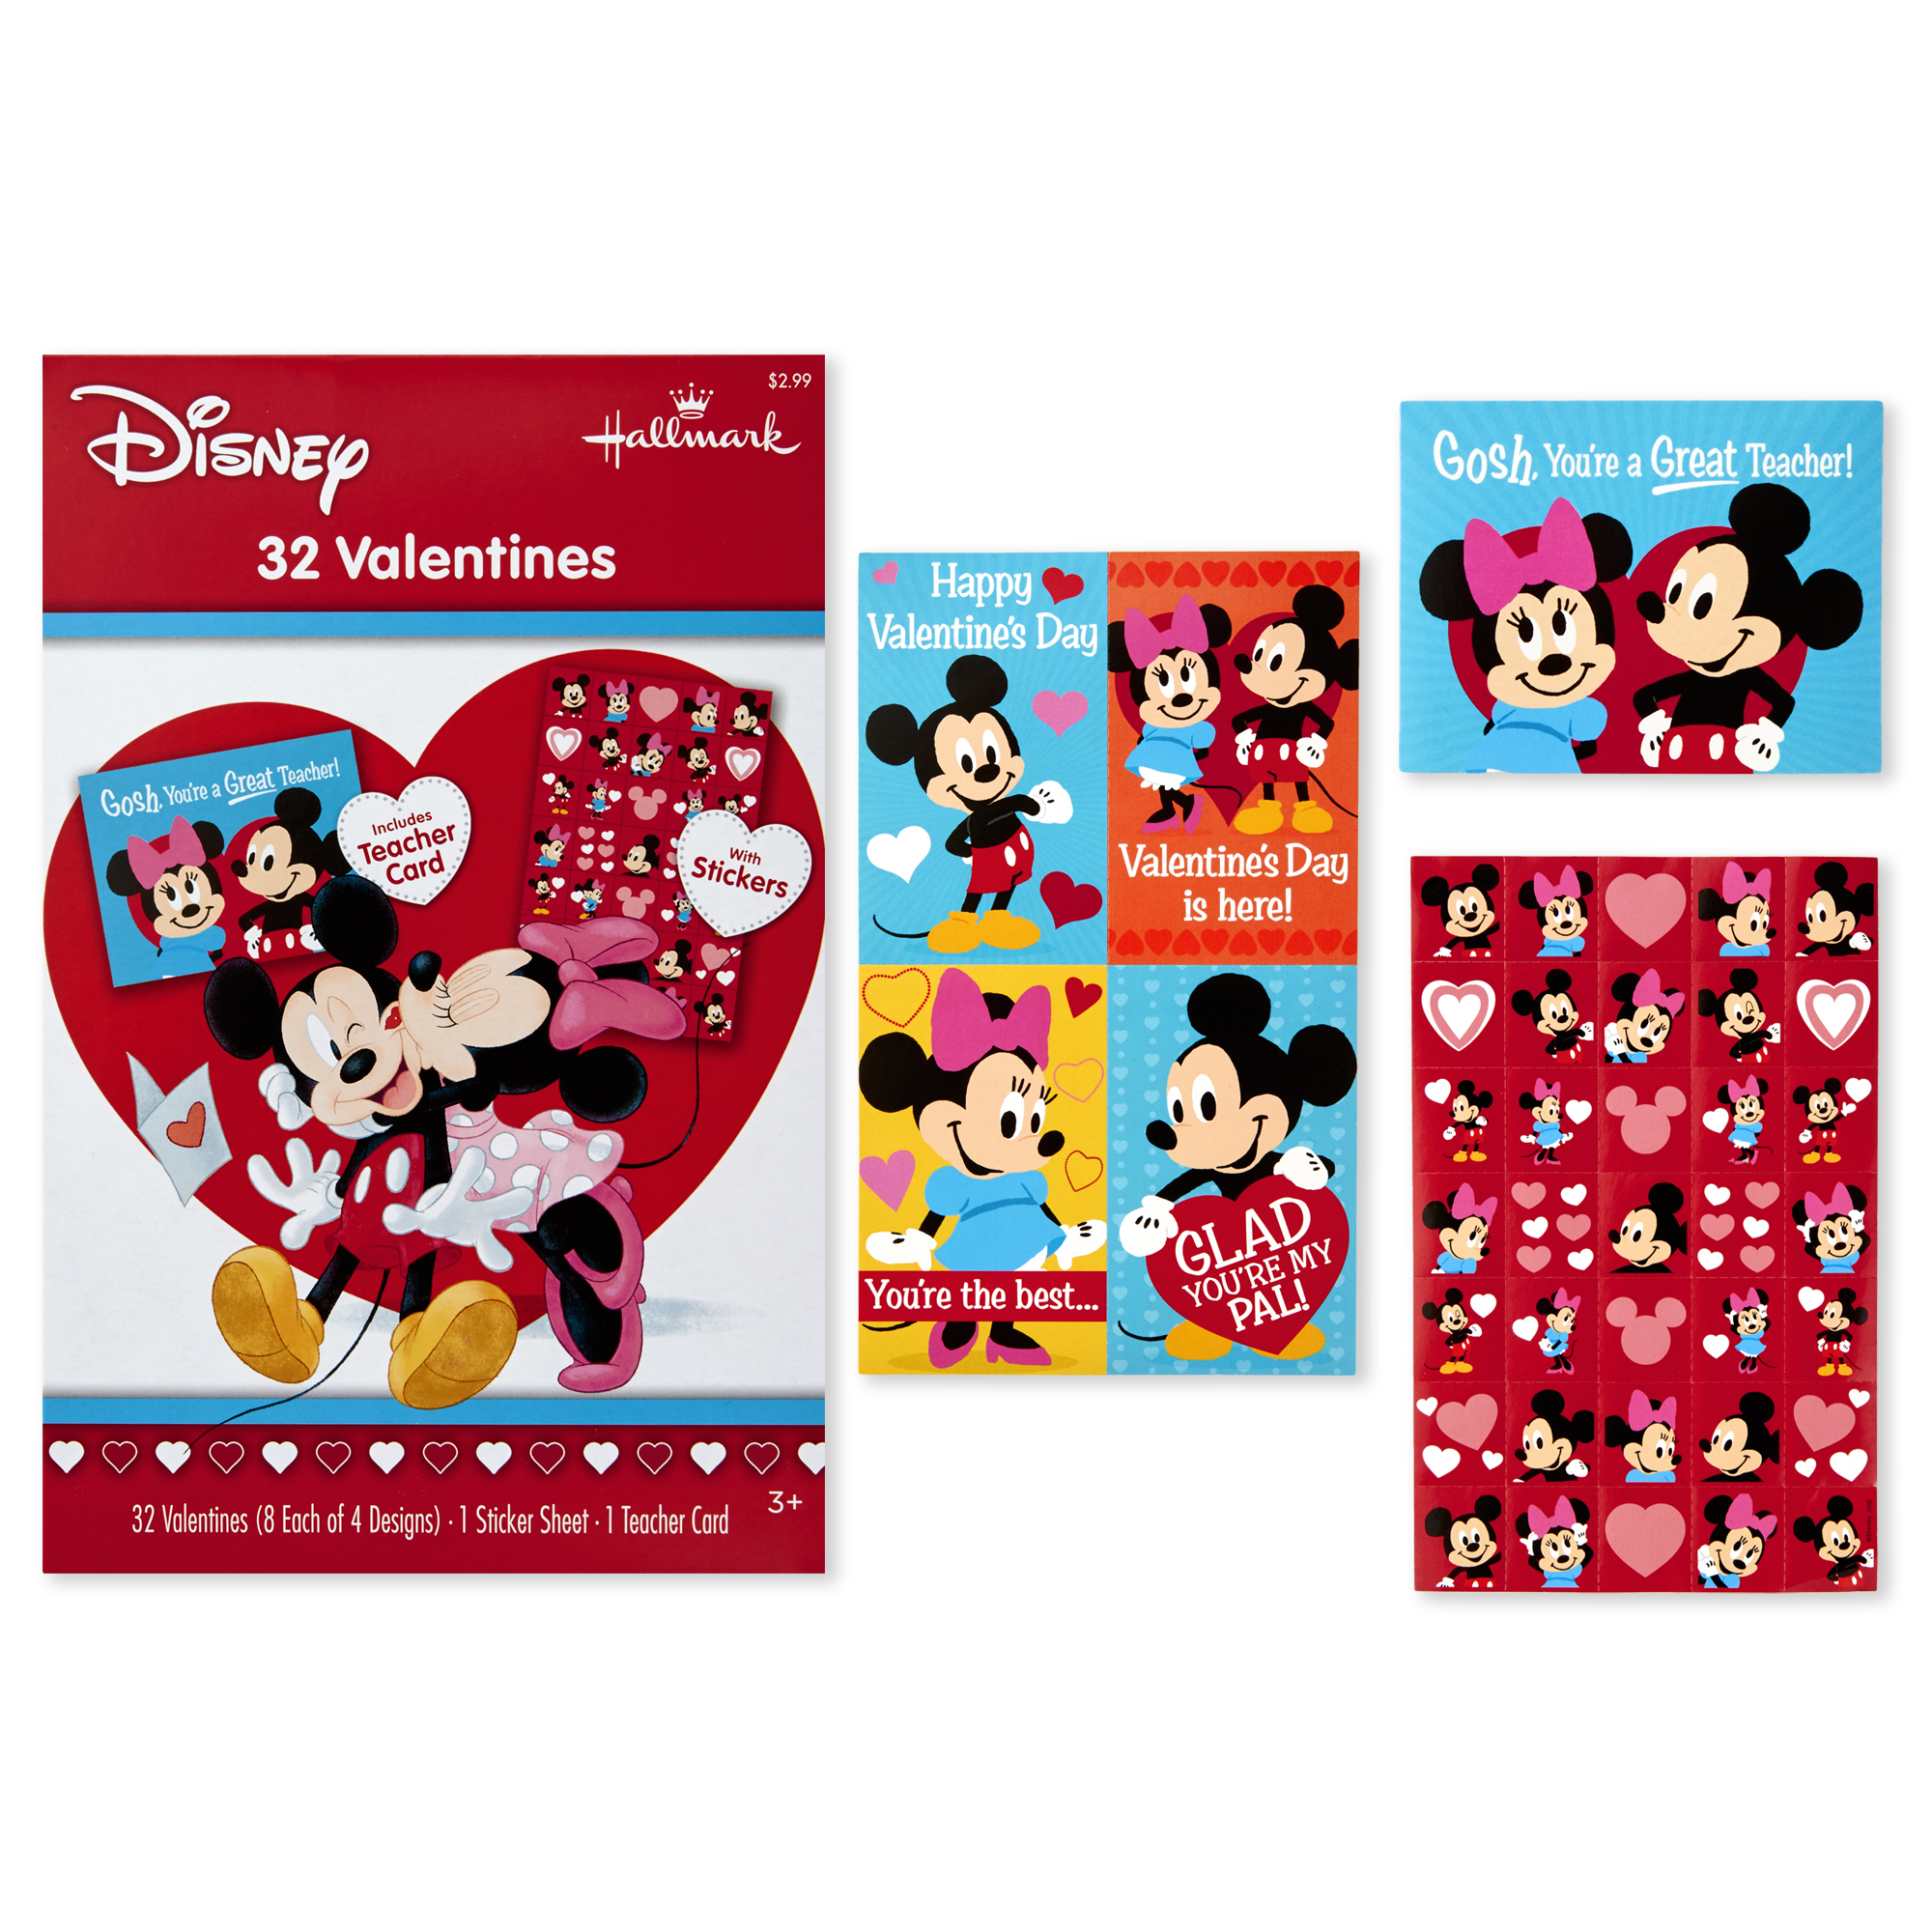 Hallmark Disney Kids Valentine's Day Cards, Mickey Mouse and Minnie Mouse (32 Cards, 35 Stickers, 1 Teacher Card)